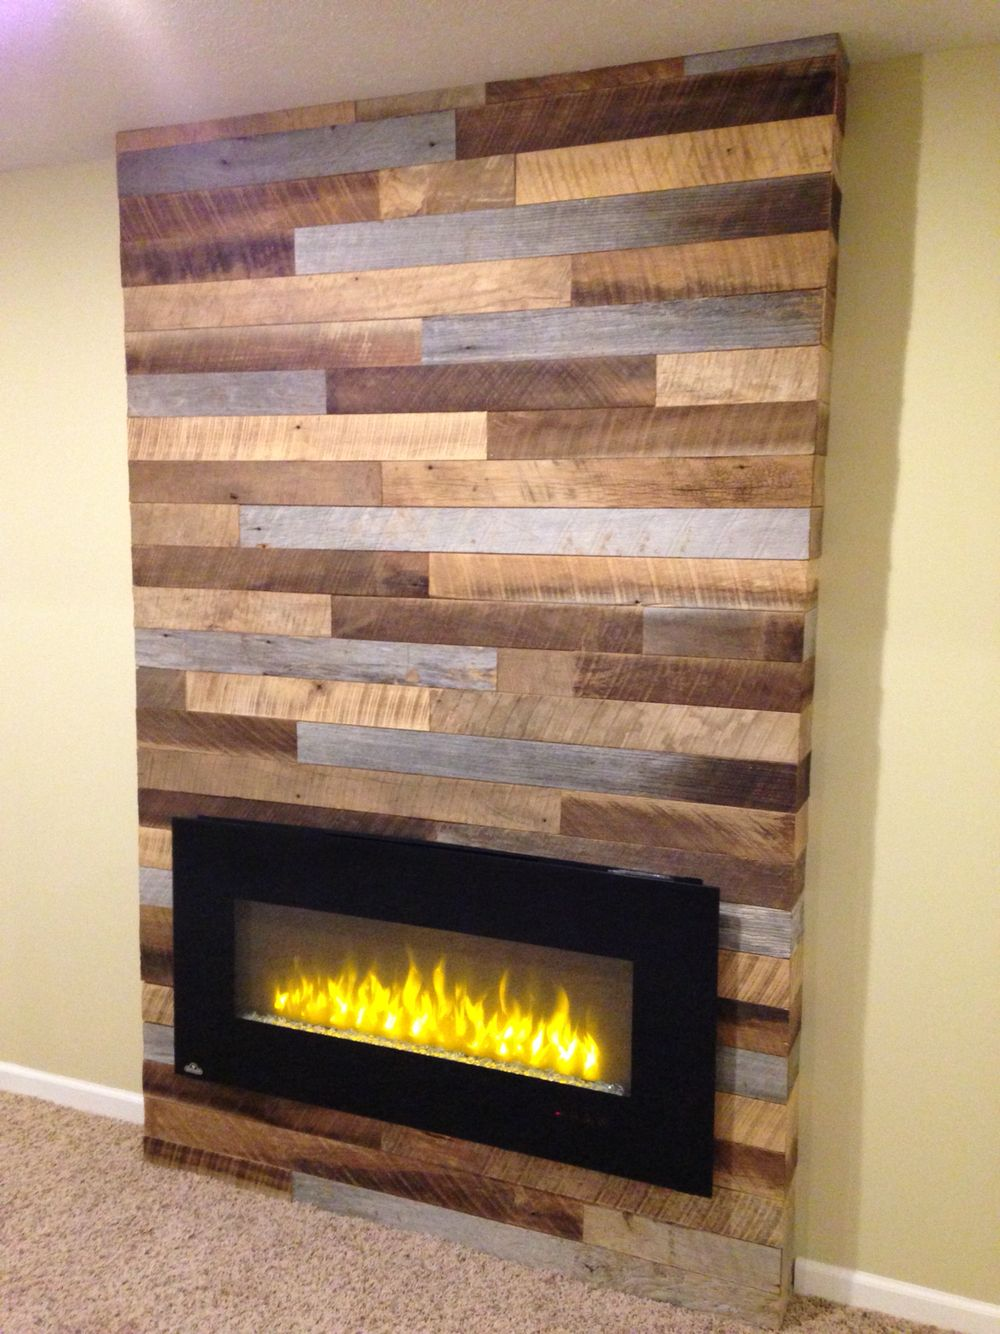 Using Reclaimed Wood And Pallets With A Modern Electric Fireplace Homey Things Pinterest